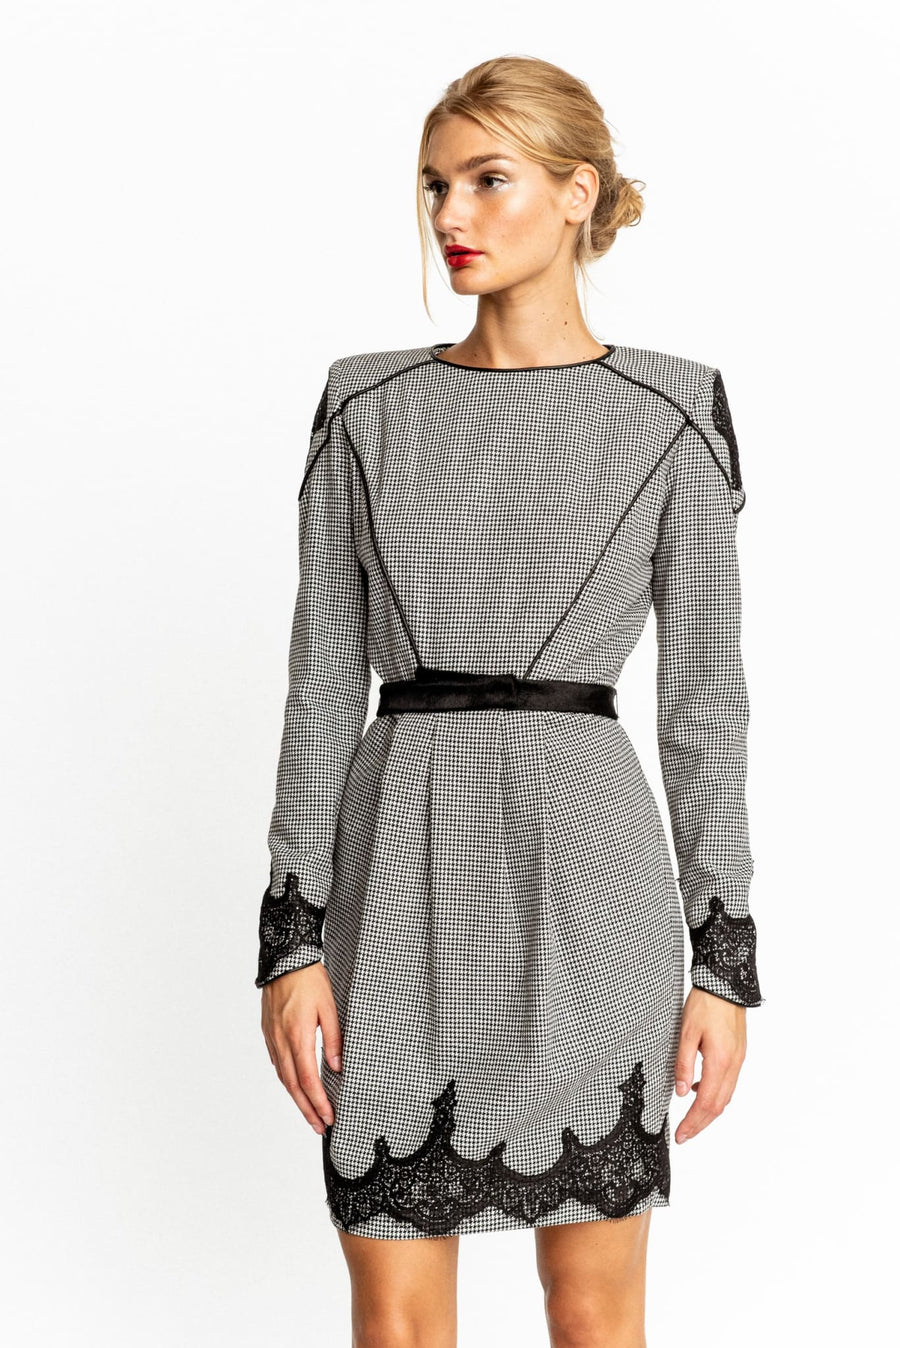 Carlotta Long-Sleeve Tweed Sheath Dress With Calf Fur Piping - Dress